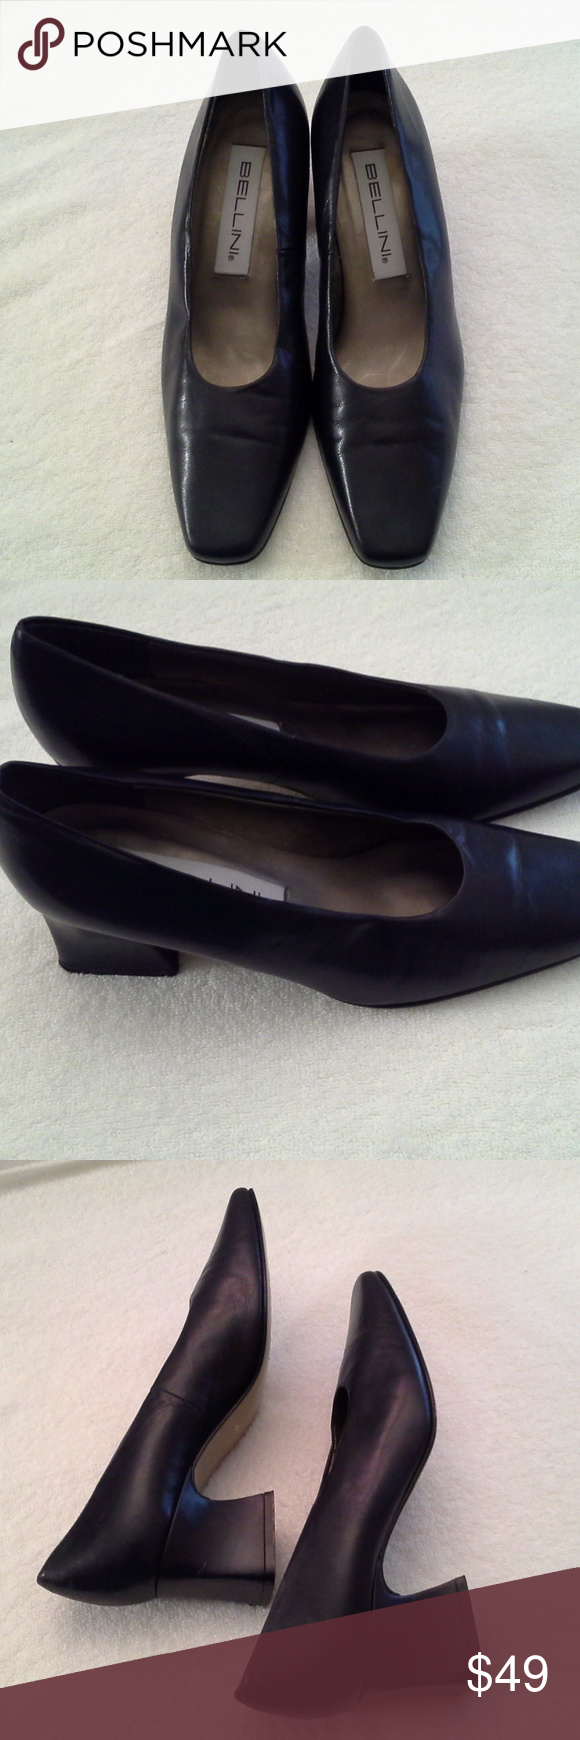 d5f10a932a0 Vintage Bellini Navy Leather Pumps Leather upper 2